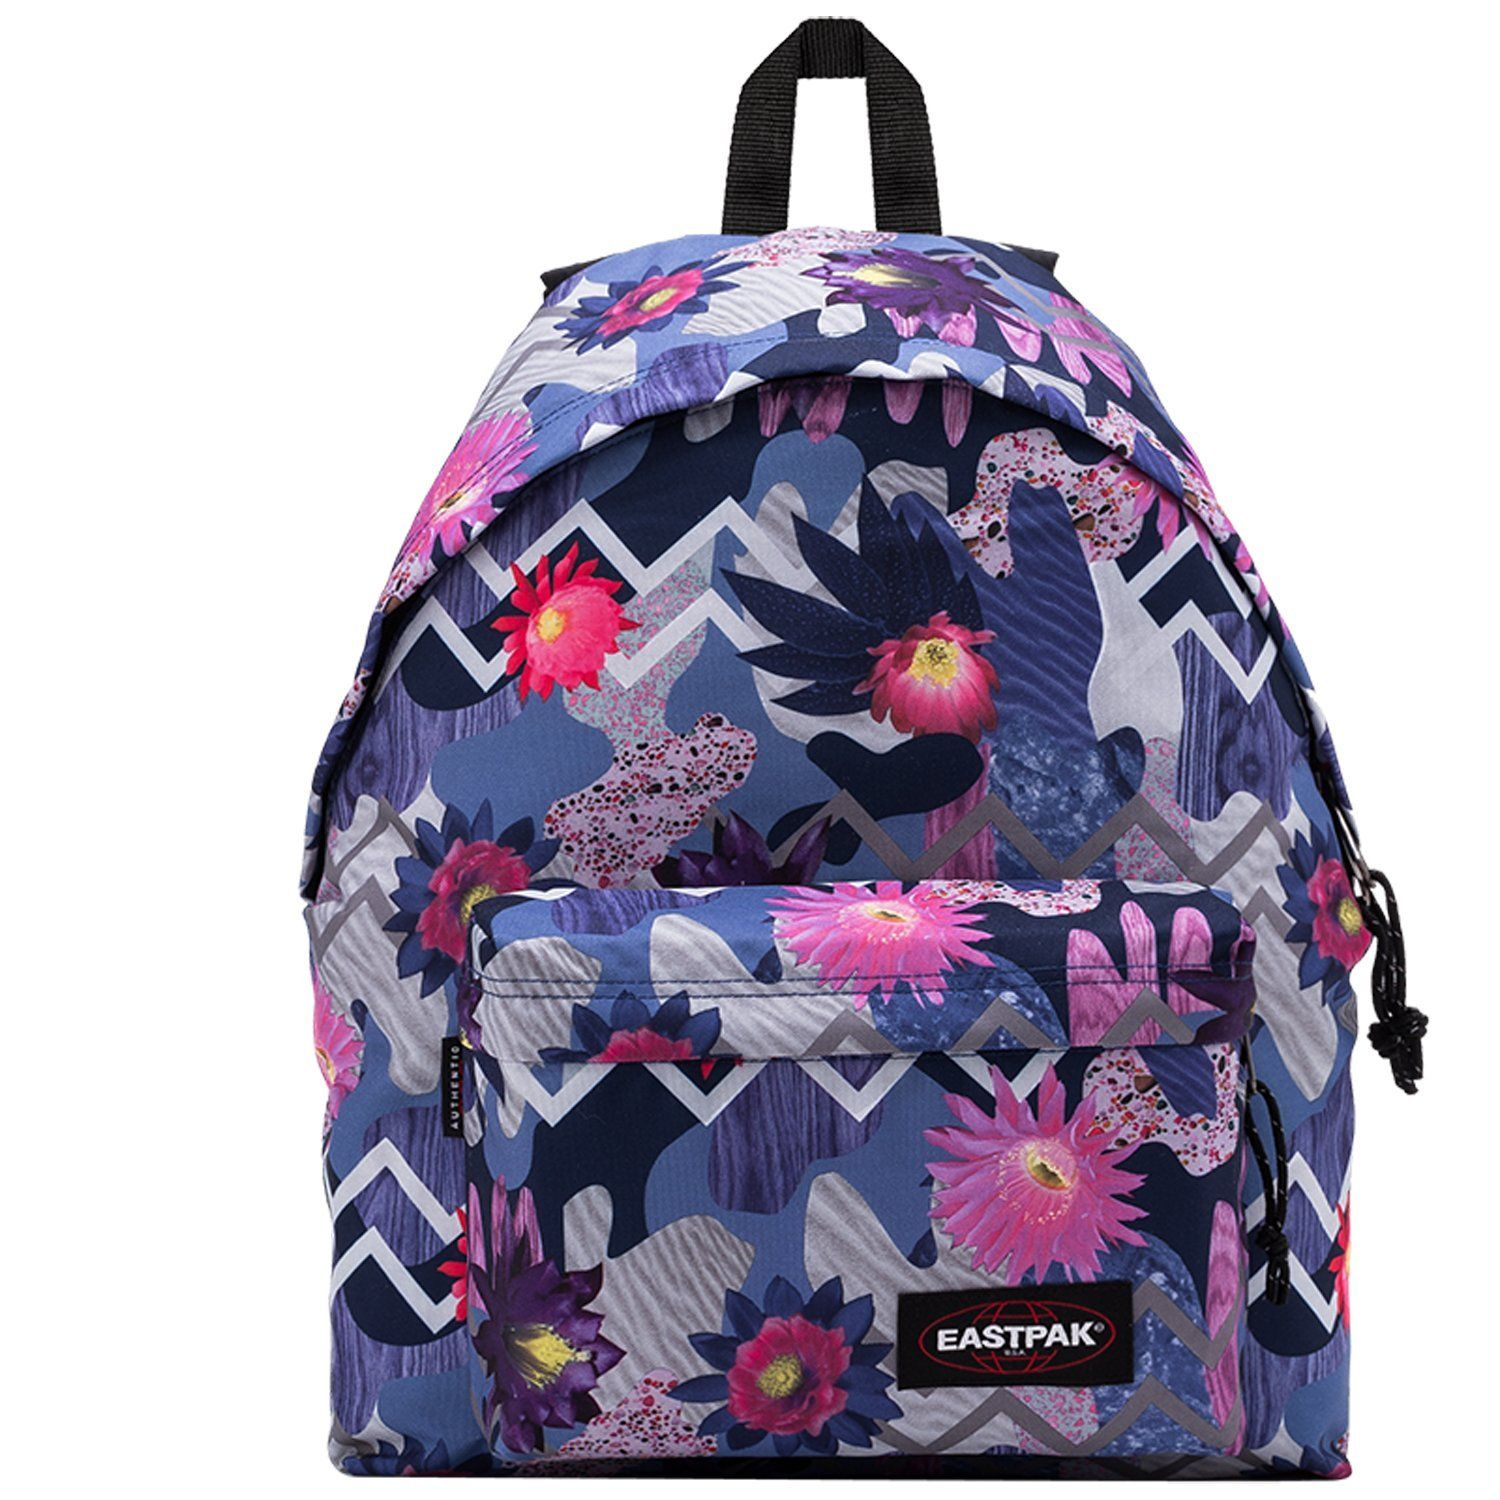 miglior sito web b94e0 b2480 Eastpak Zaino EK62017L, Multicolore: Amazon.it: Valigeria | Zaino